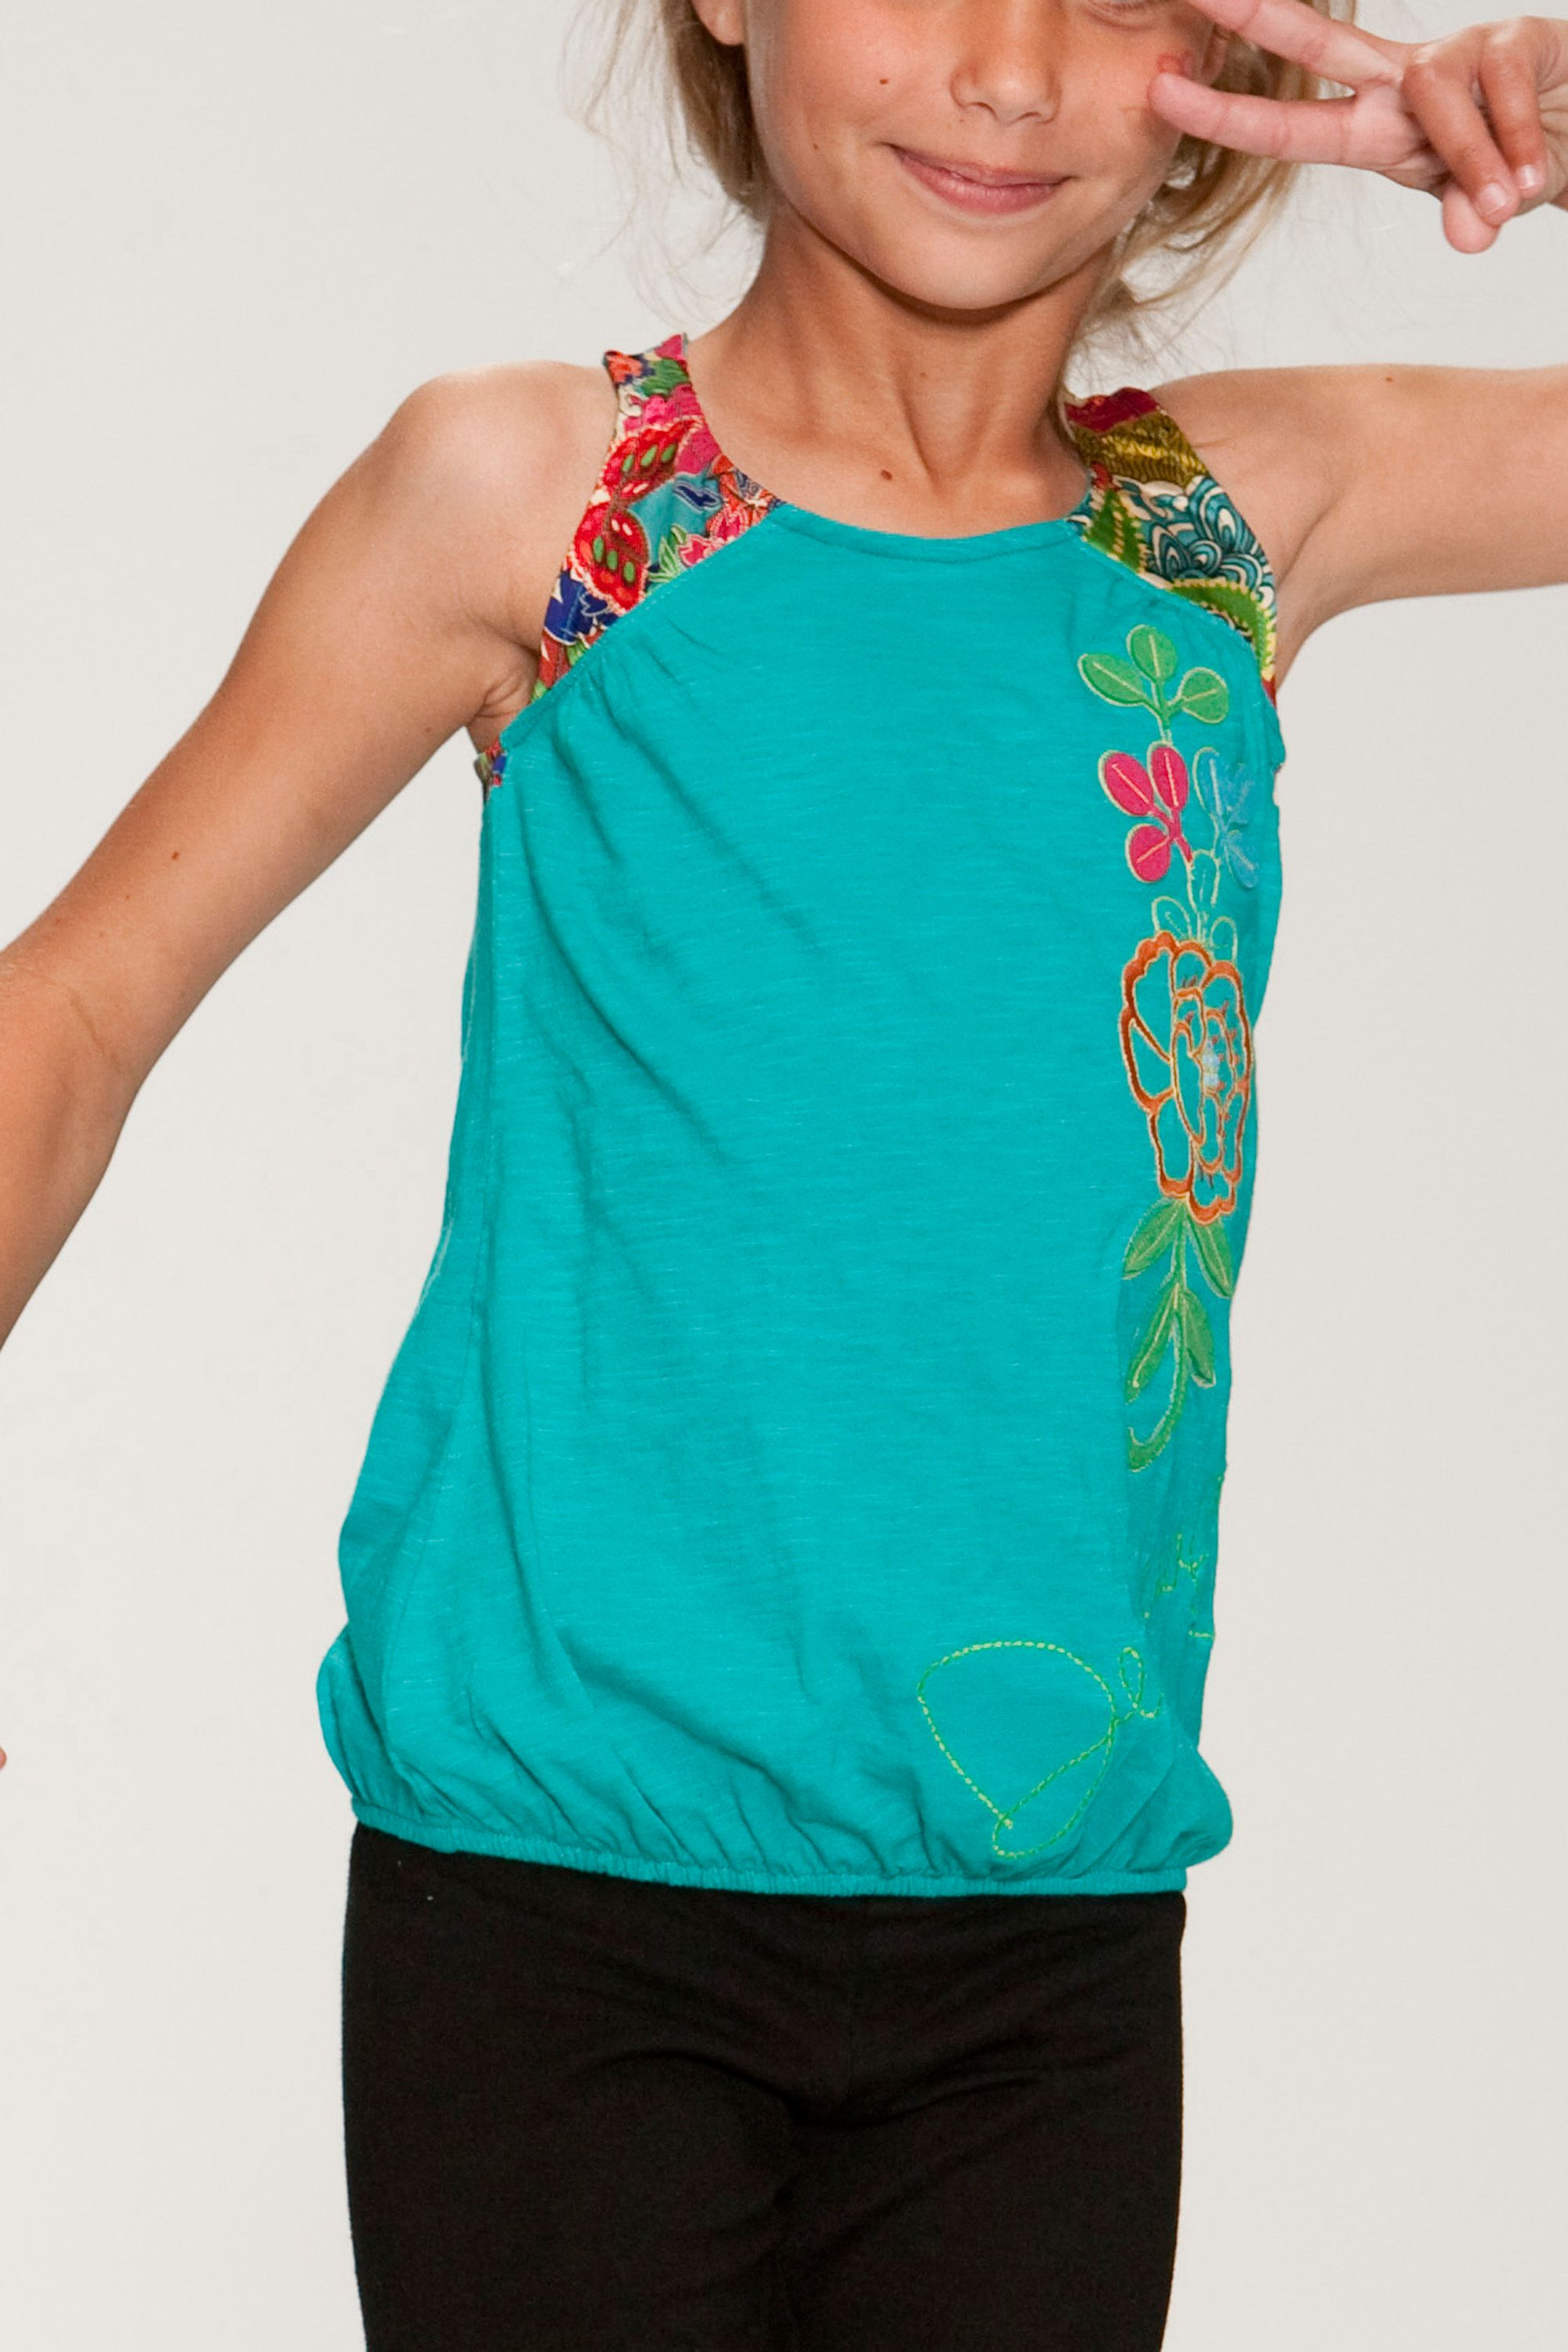 Desigual Childrens Desigual Flower print T-shirt, product image